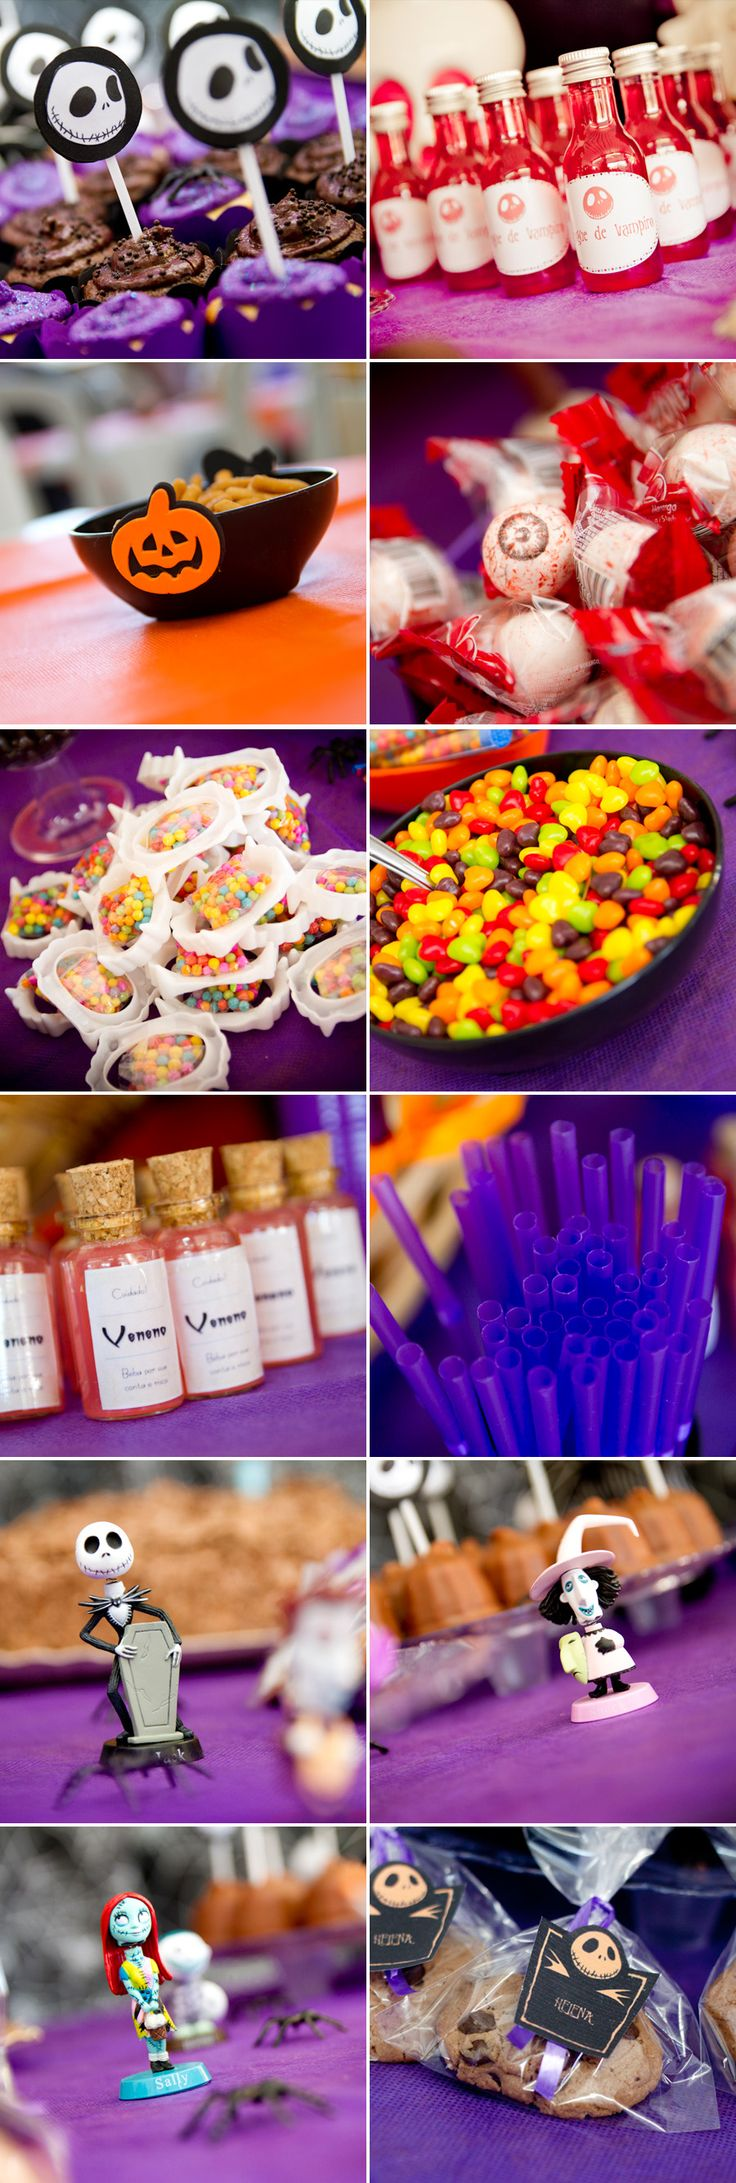 #kidsparty #party #candy #bday #birthday #nightmare before christmas